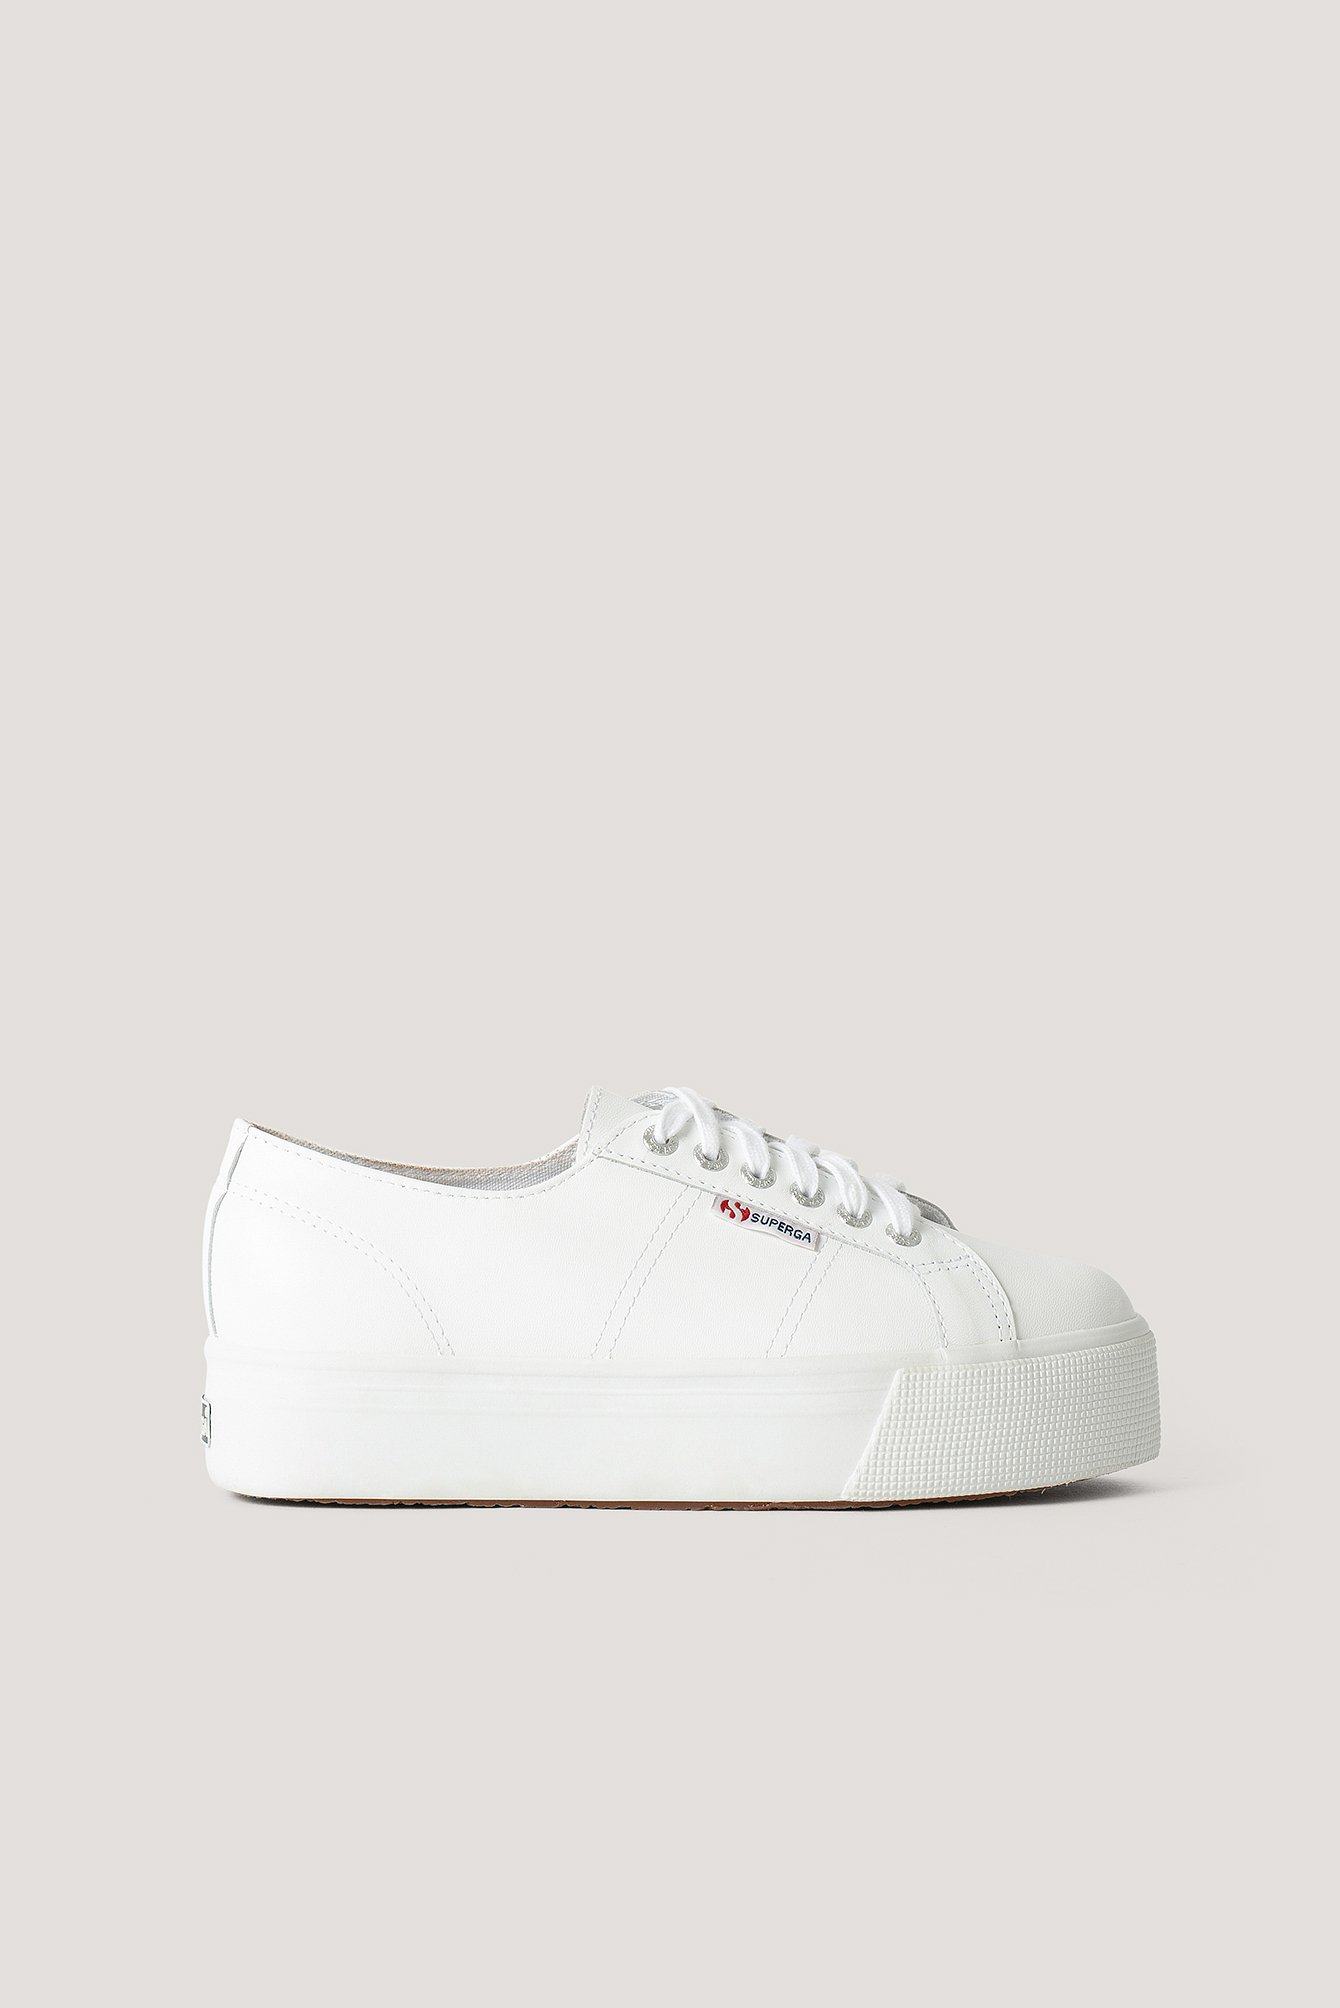 Superga Naplng 2790 White